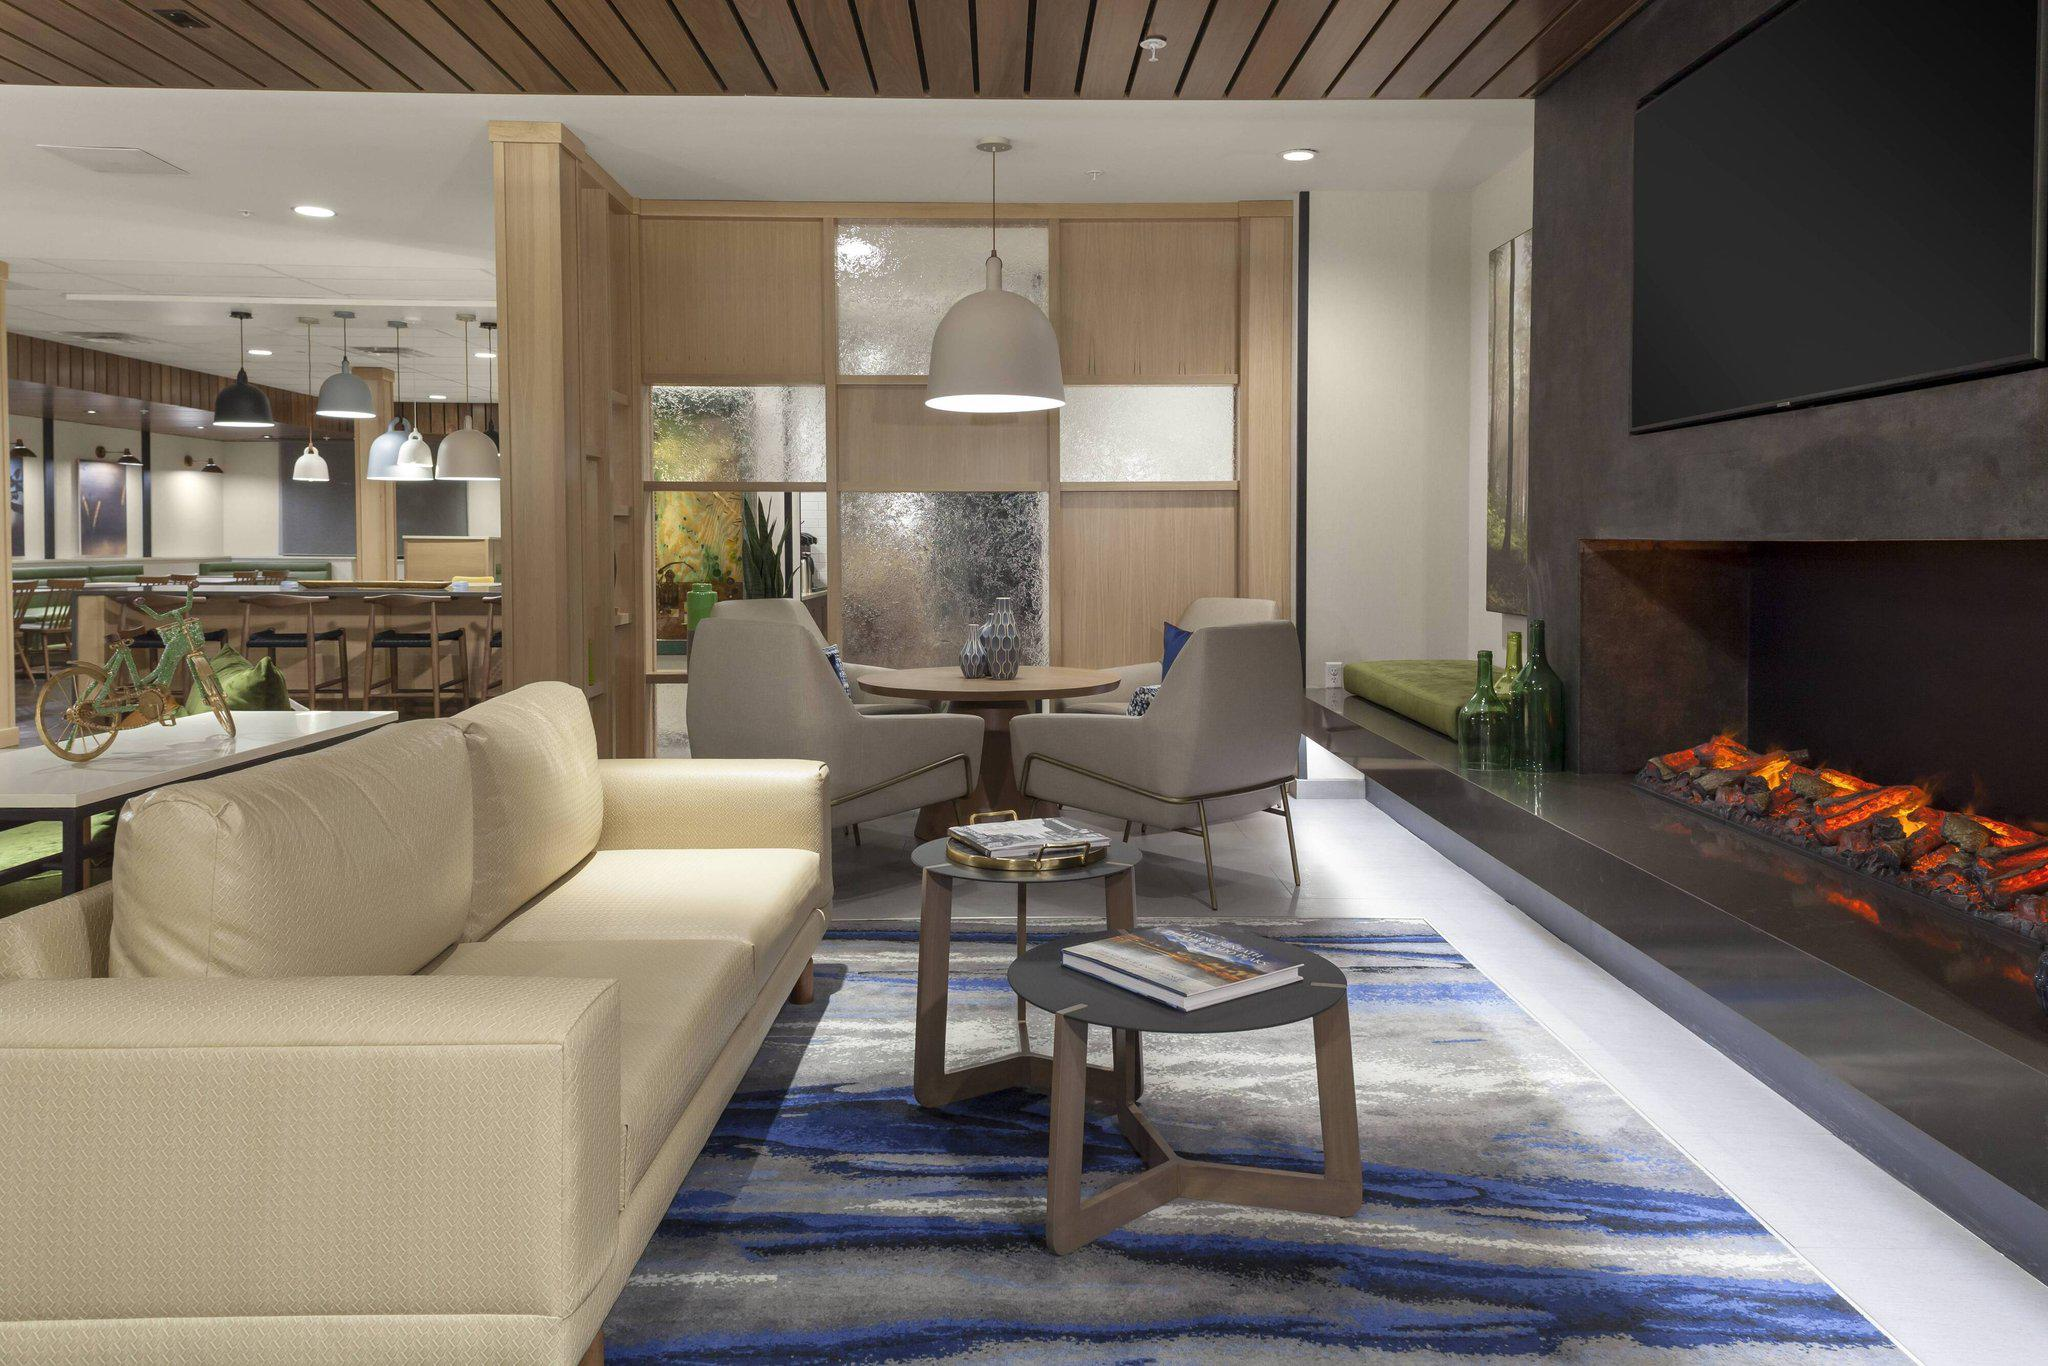 Fairfield Inn & Suites by Marriott Fort Collins South